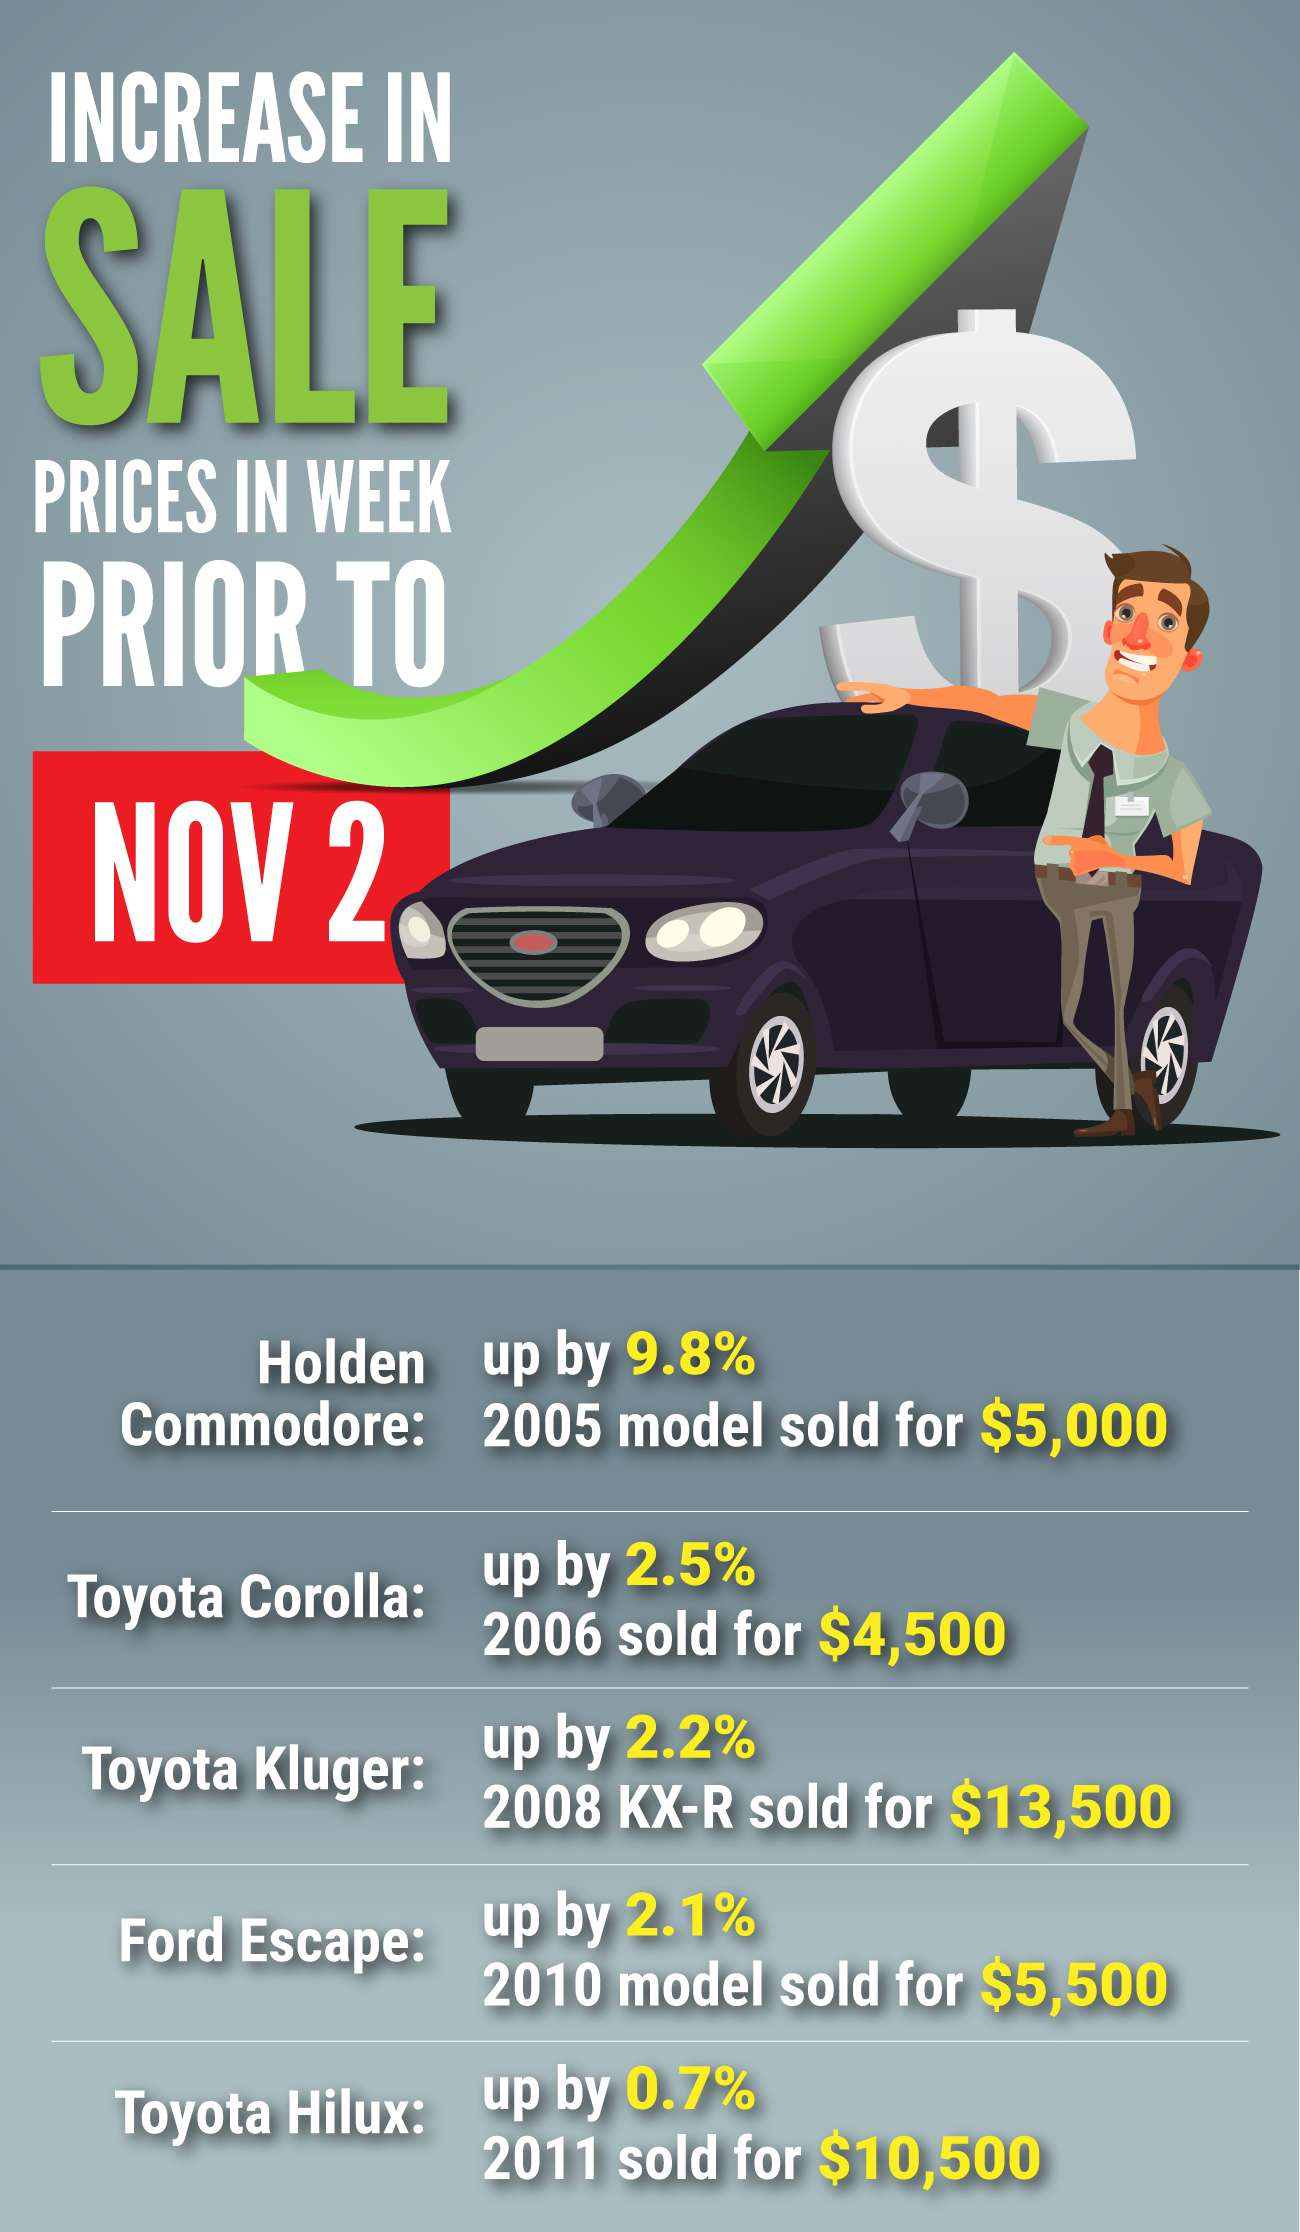 Used Car Prices Soar Due To Covid Pandemic Increased Public Transport Daily Telegraph